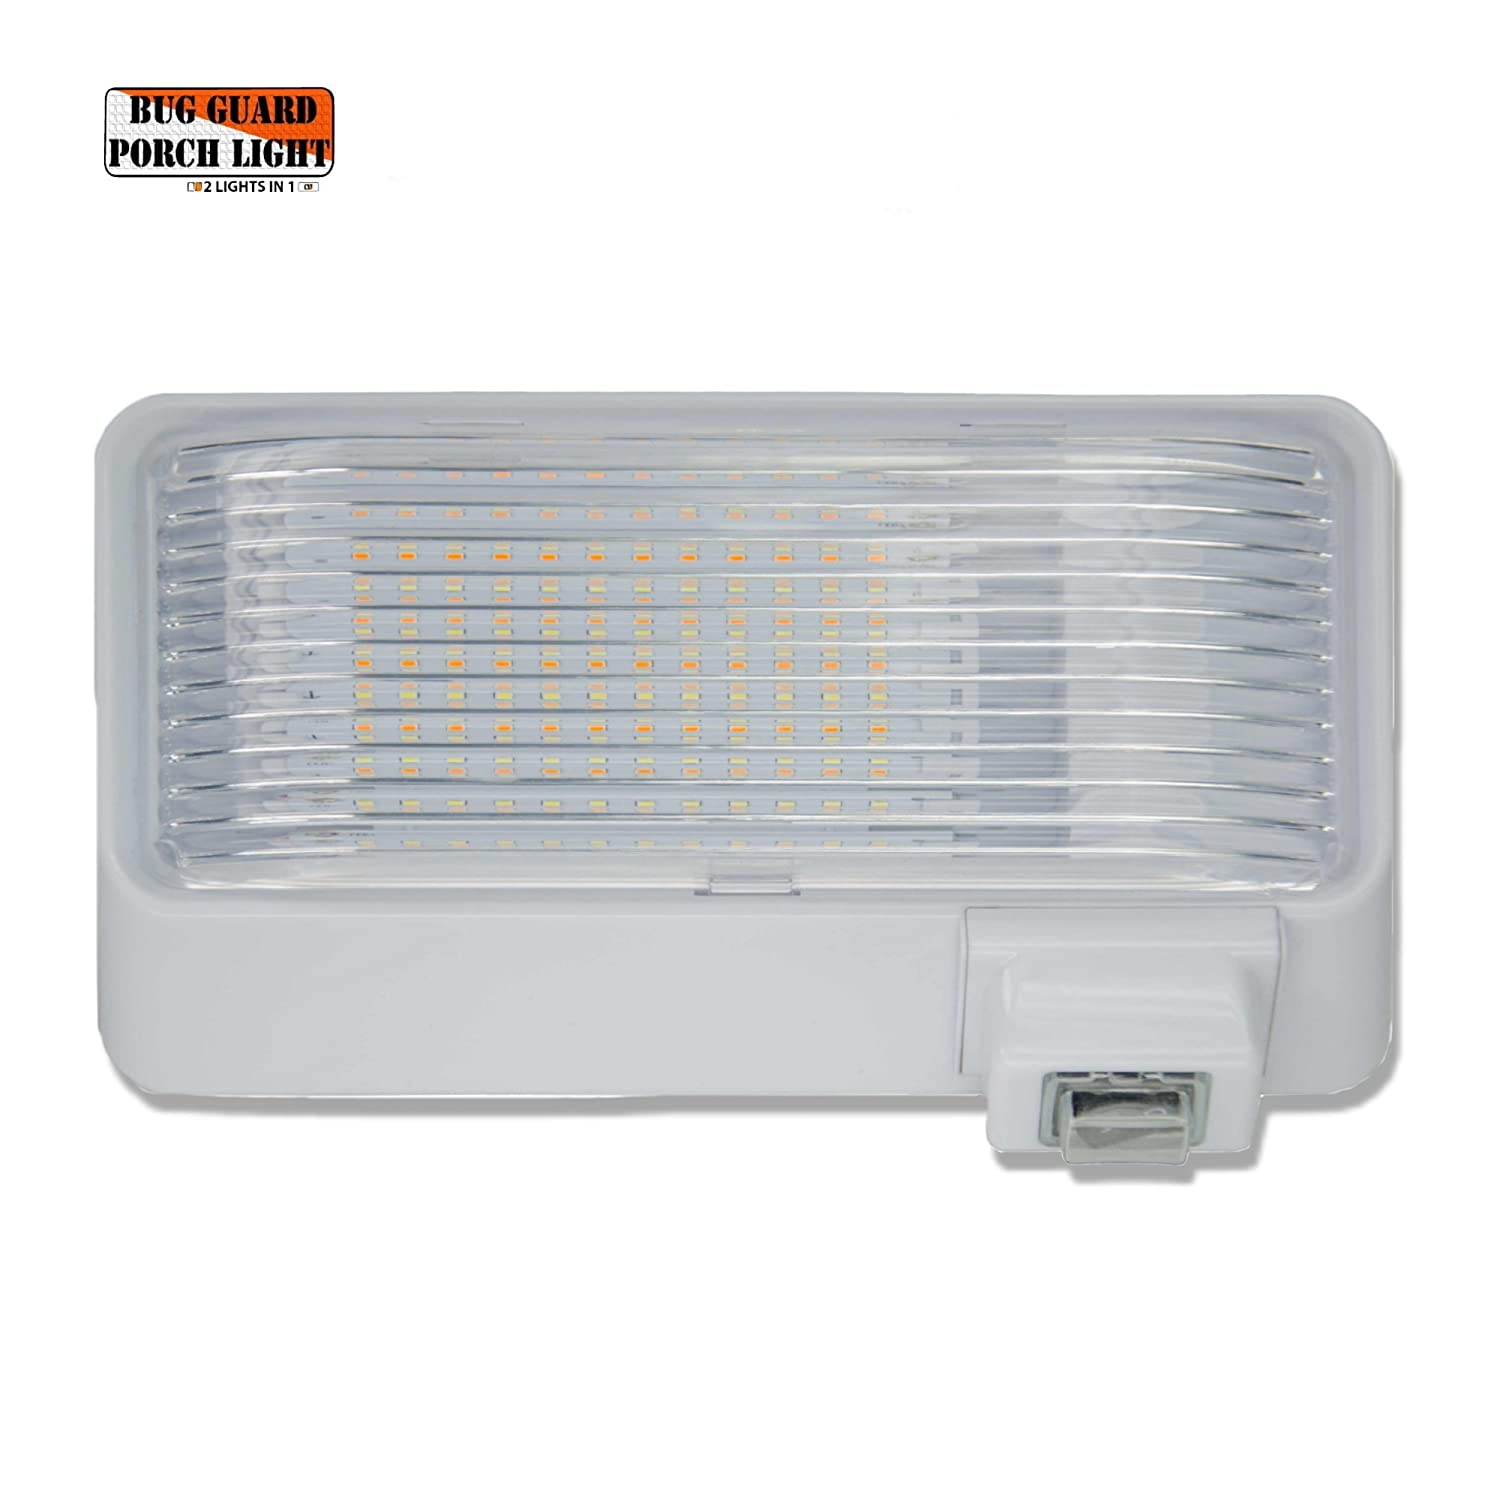 BUG-GUARD BG520W 12 Volt Functional Exterior RV long-life LED Flood Porch light with bright 220 lumen (Amber)/520 Lunen (White), 2 Lights in one. RV LED Lites